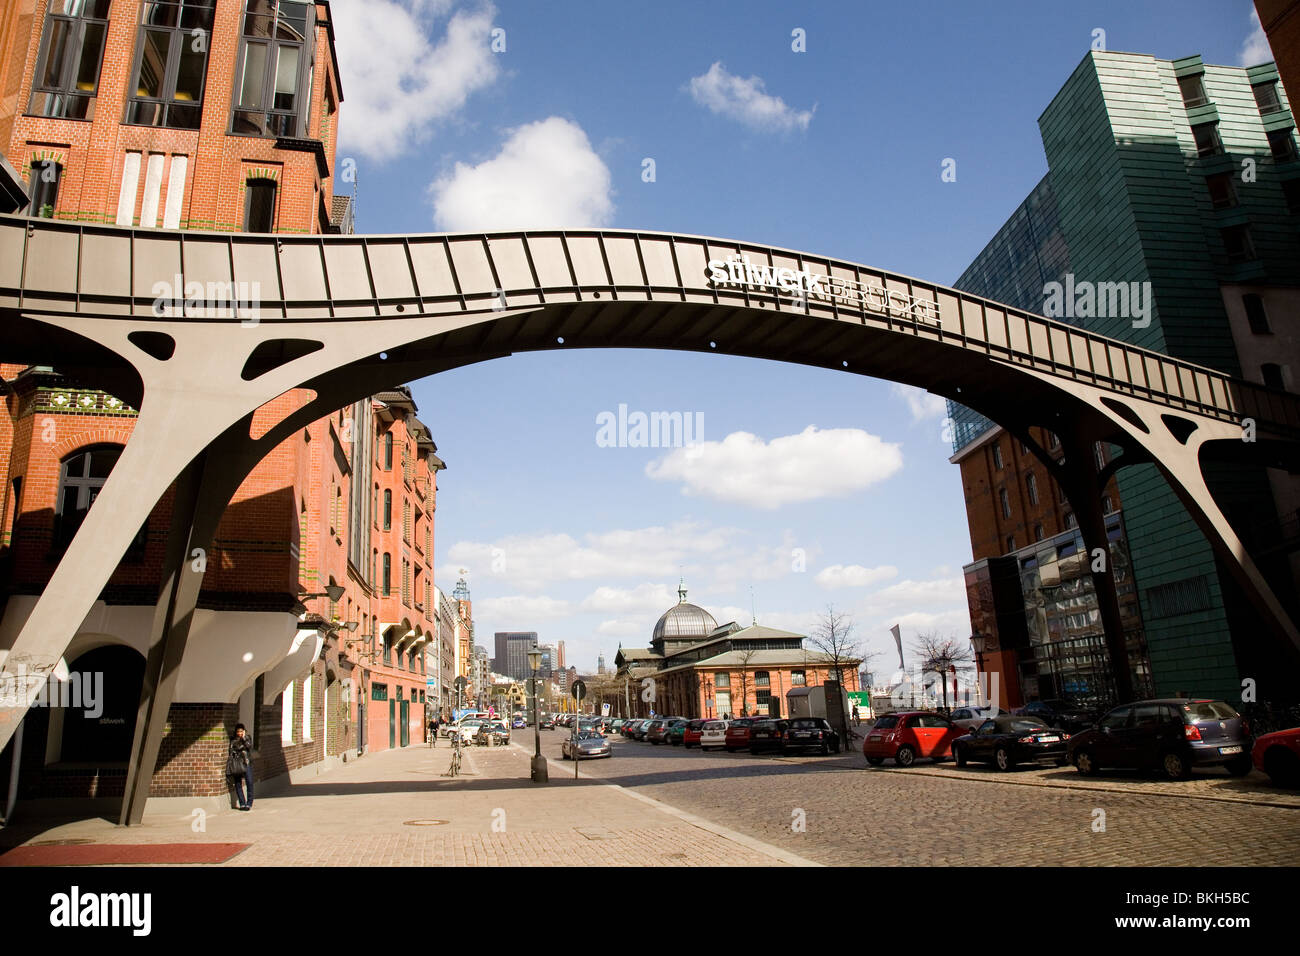 The Stilwerk Bruecke next to the Stilwerk design house in Hamburg, Germany. - Stock Image